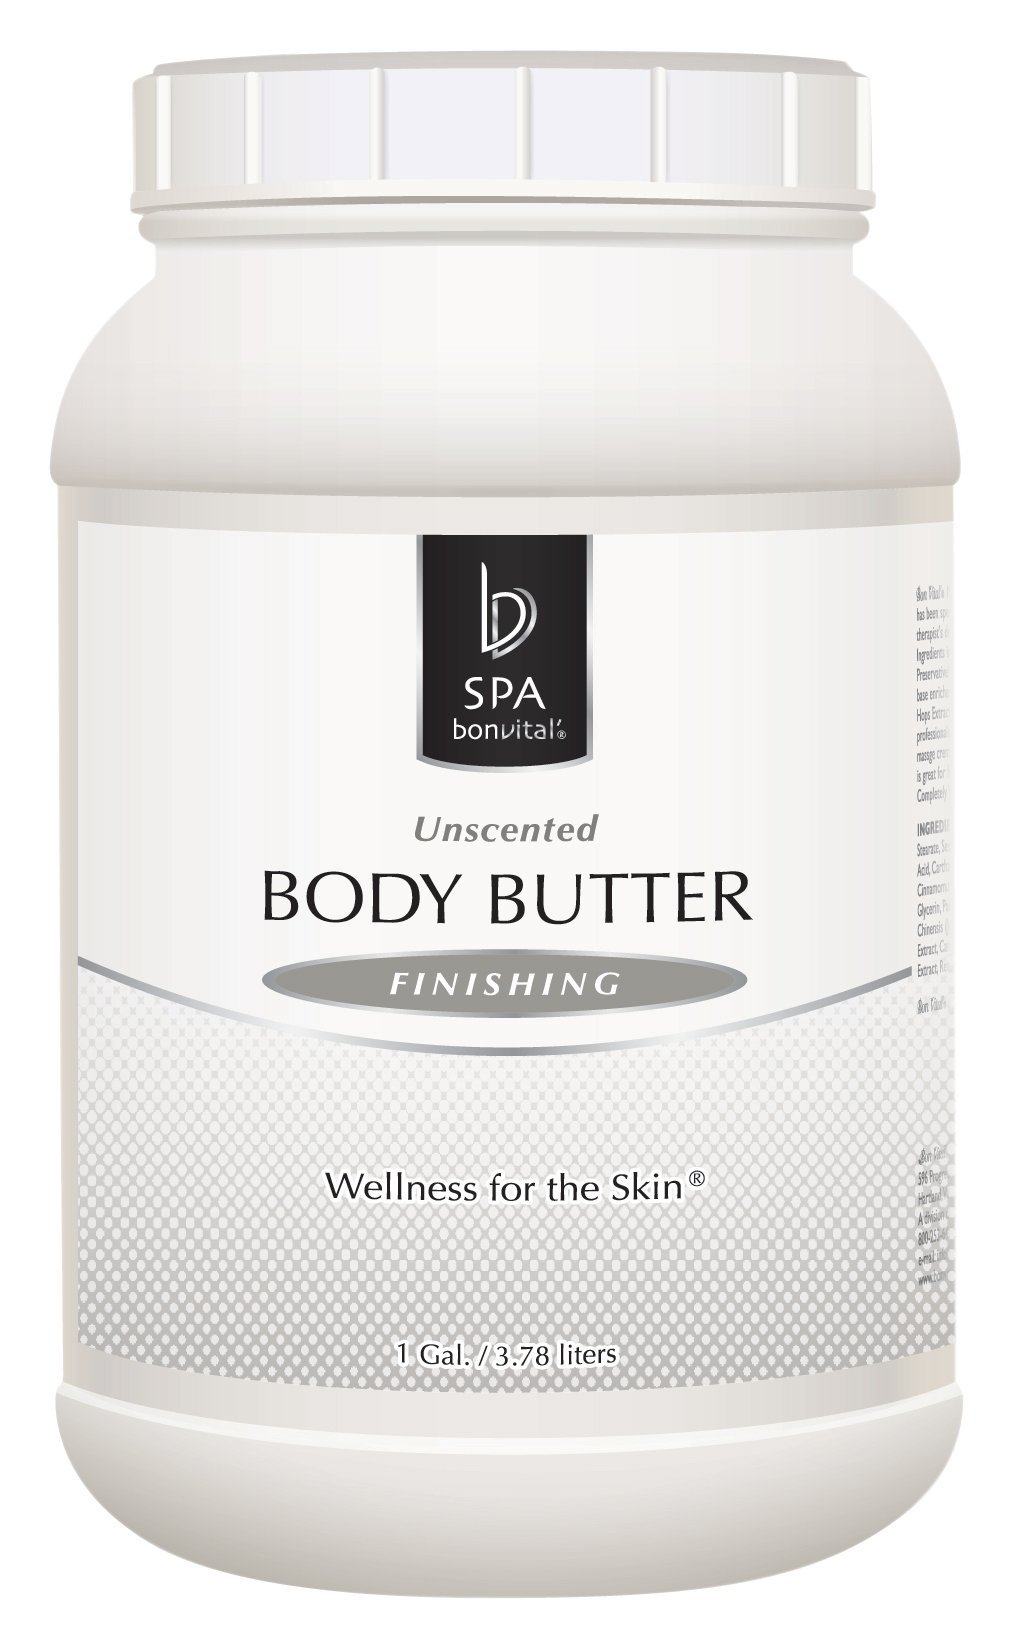 Bon Vital' Body Butter, Unscented Whipped Moisturizer with Cocoa Butter, Shea Butter, Beeswax, Hypoallergenic Lotion for Soft Skin, Professional Spa Quality Thick Lotion for Dry Patches, 8 oz. Jar